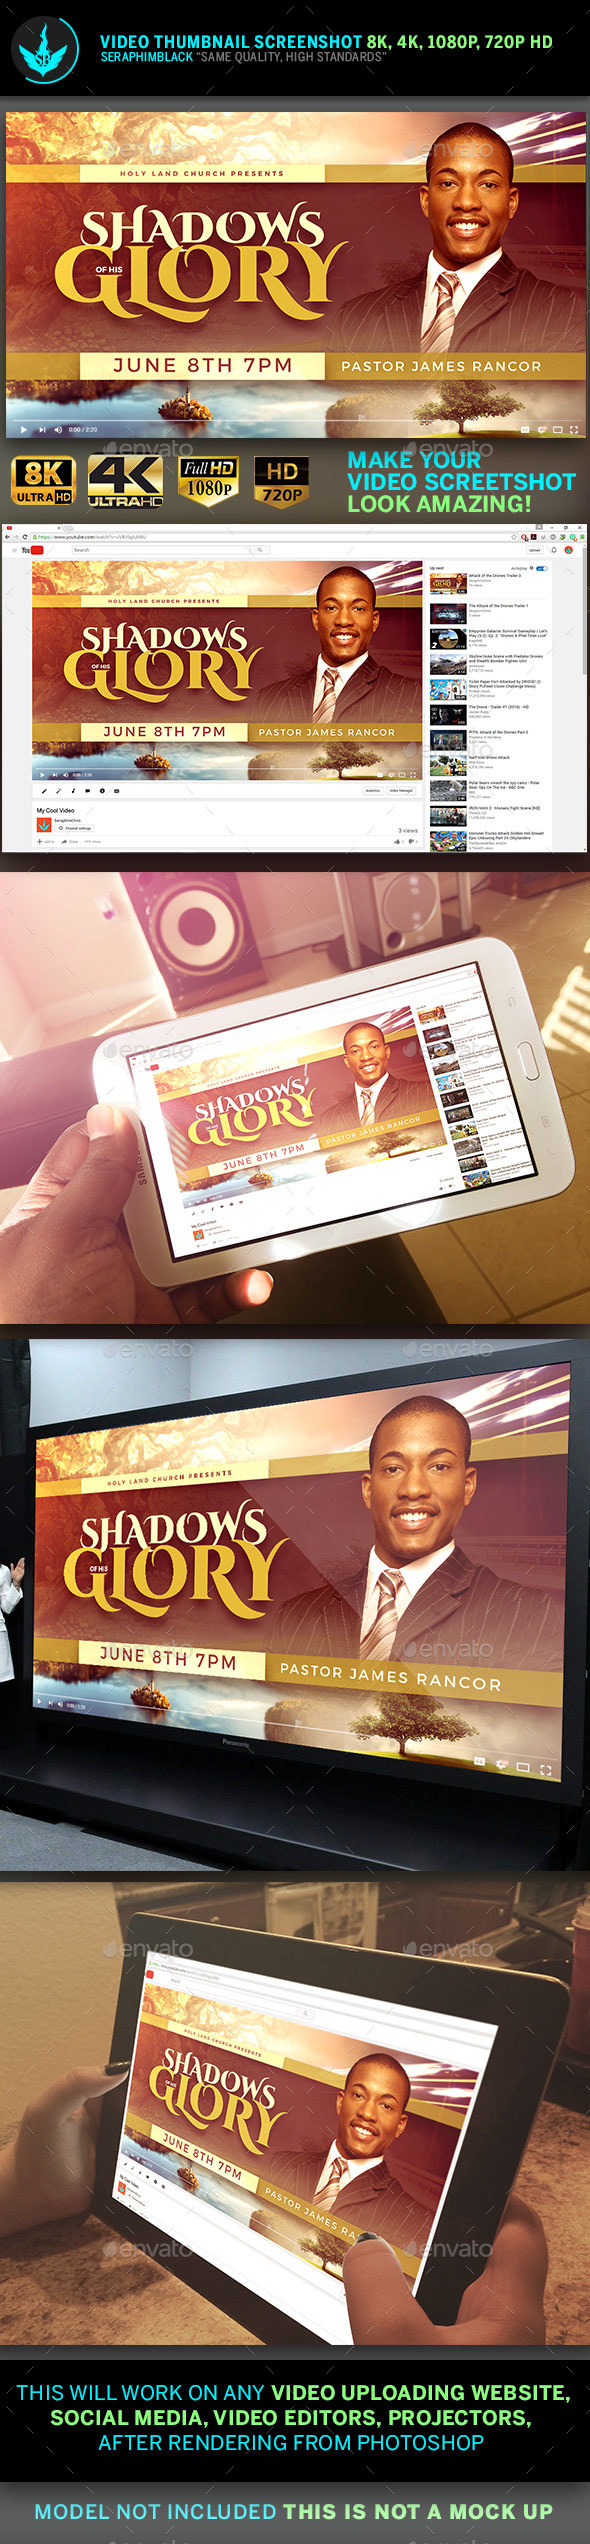 Shadows of His Glory Video Thumbnail Screenshot Template